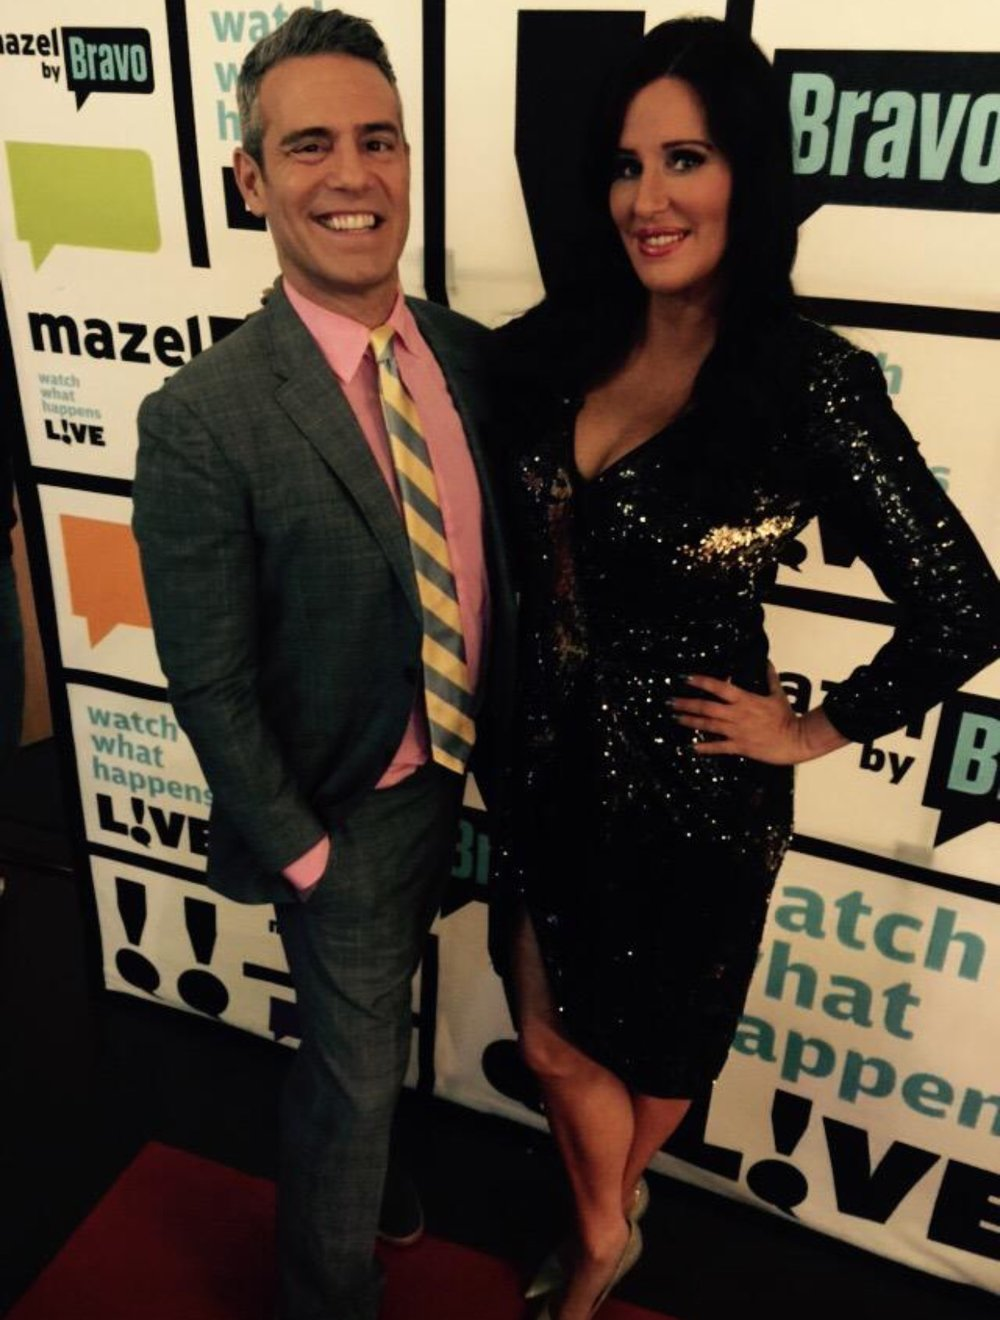 2015-Patti-Stanger-Watch-What-Happens-Live-WWHL-Andy-Cohen-Bravo-Television.jpg